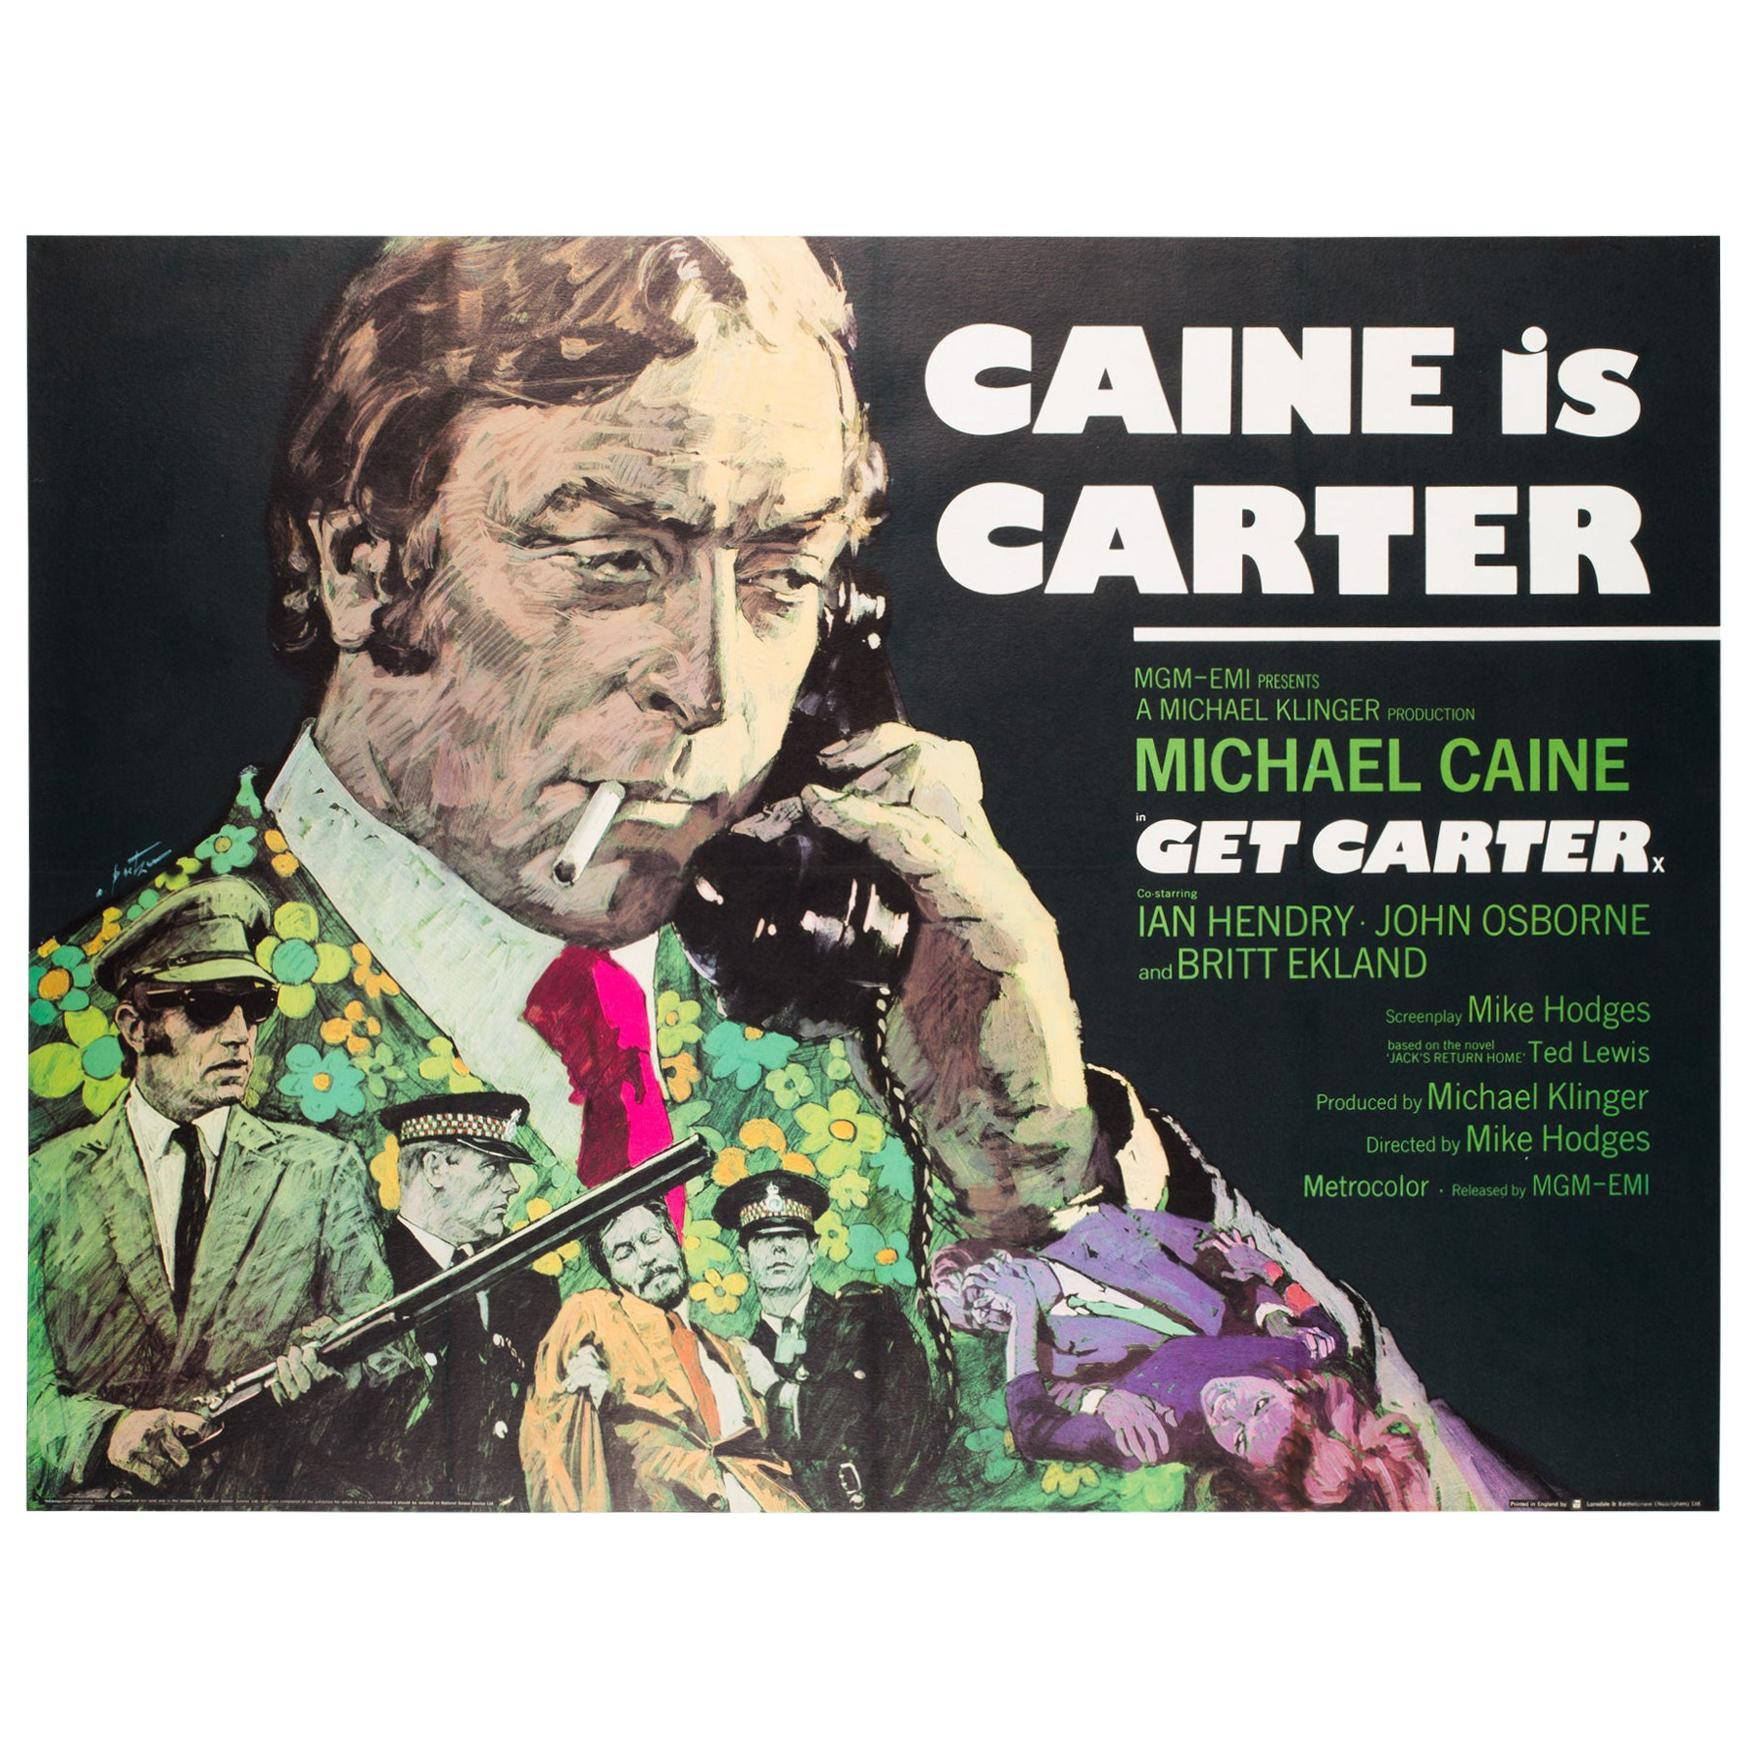 Get Carter Original UK Film Poster, 1971, Arnaldo Putzu